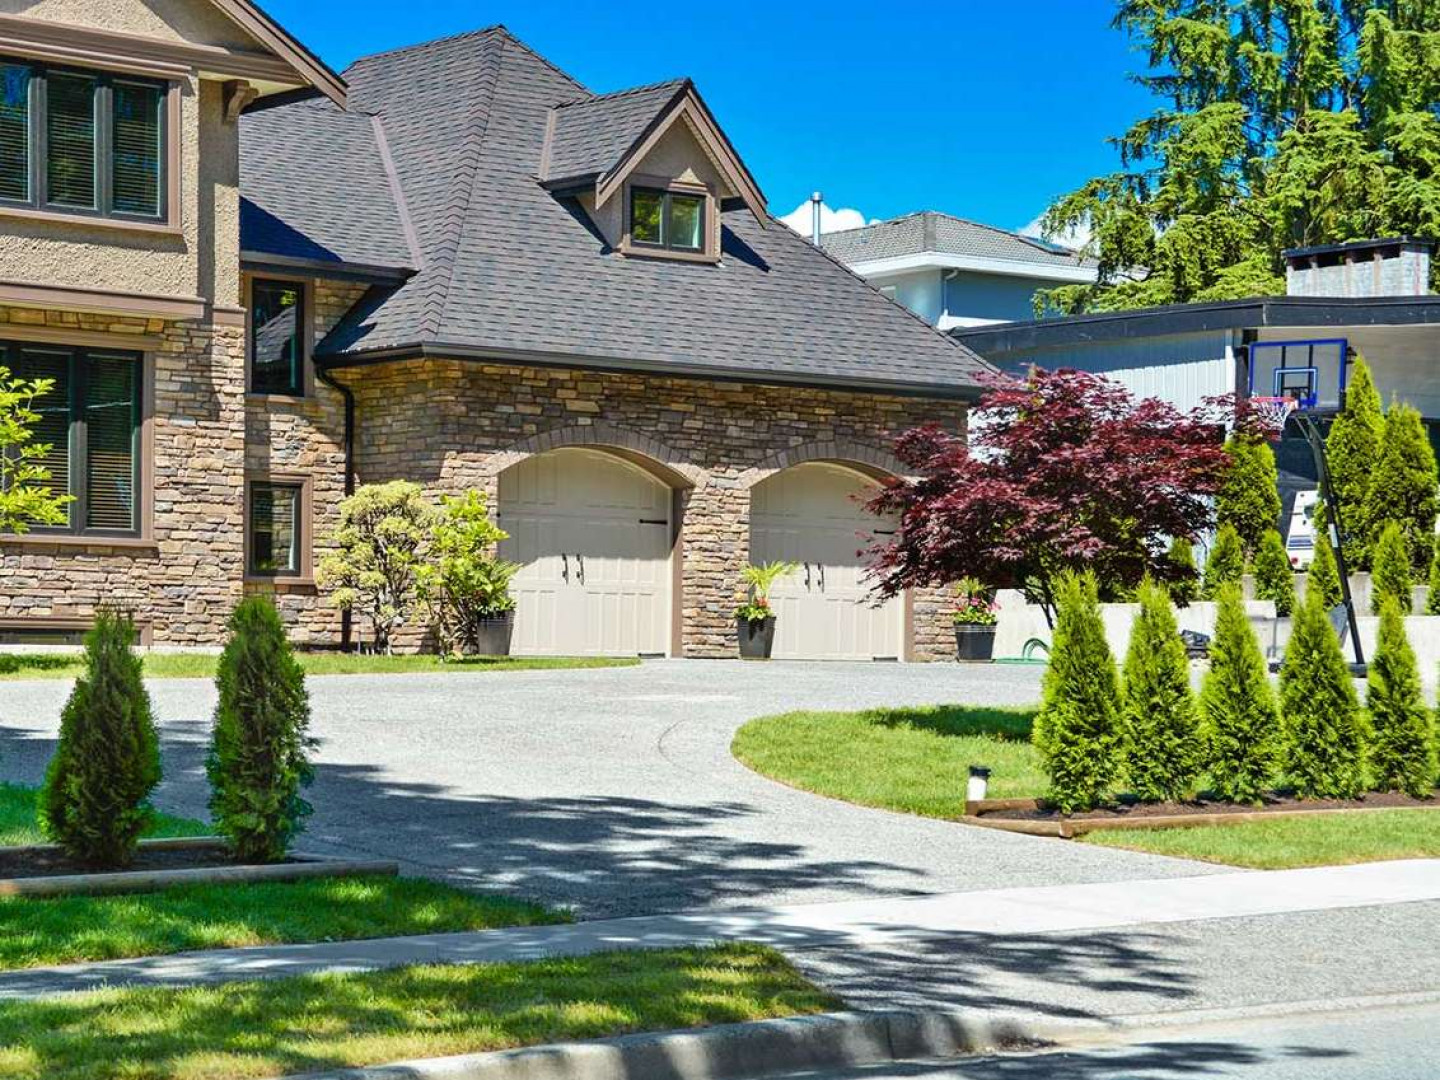 Get a driveway that fits your home or business